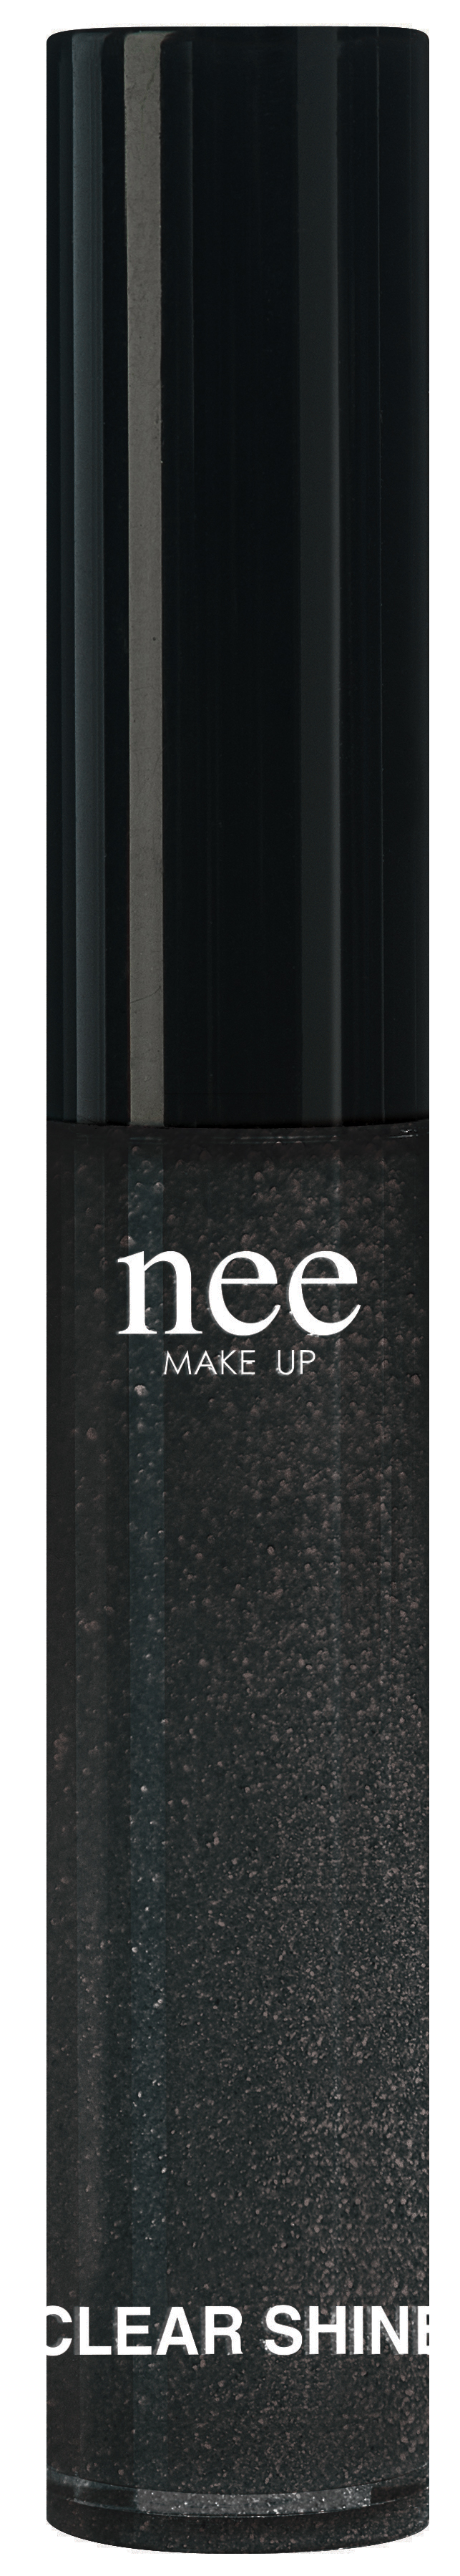 Nee Make-Up Clear Shine Gloss